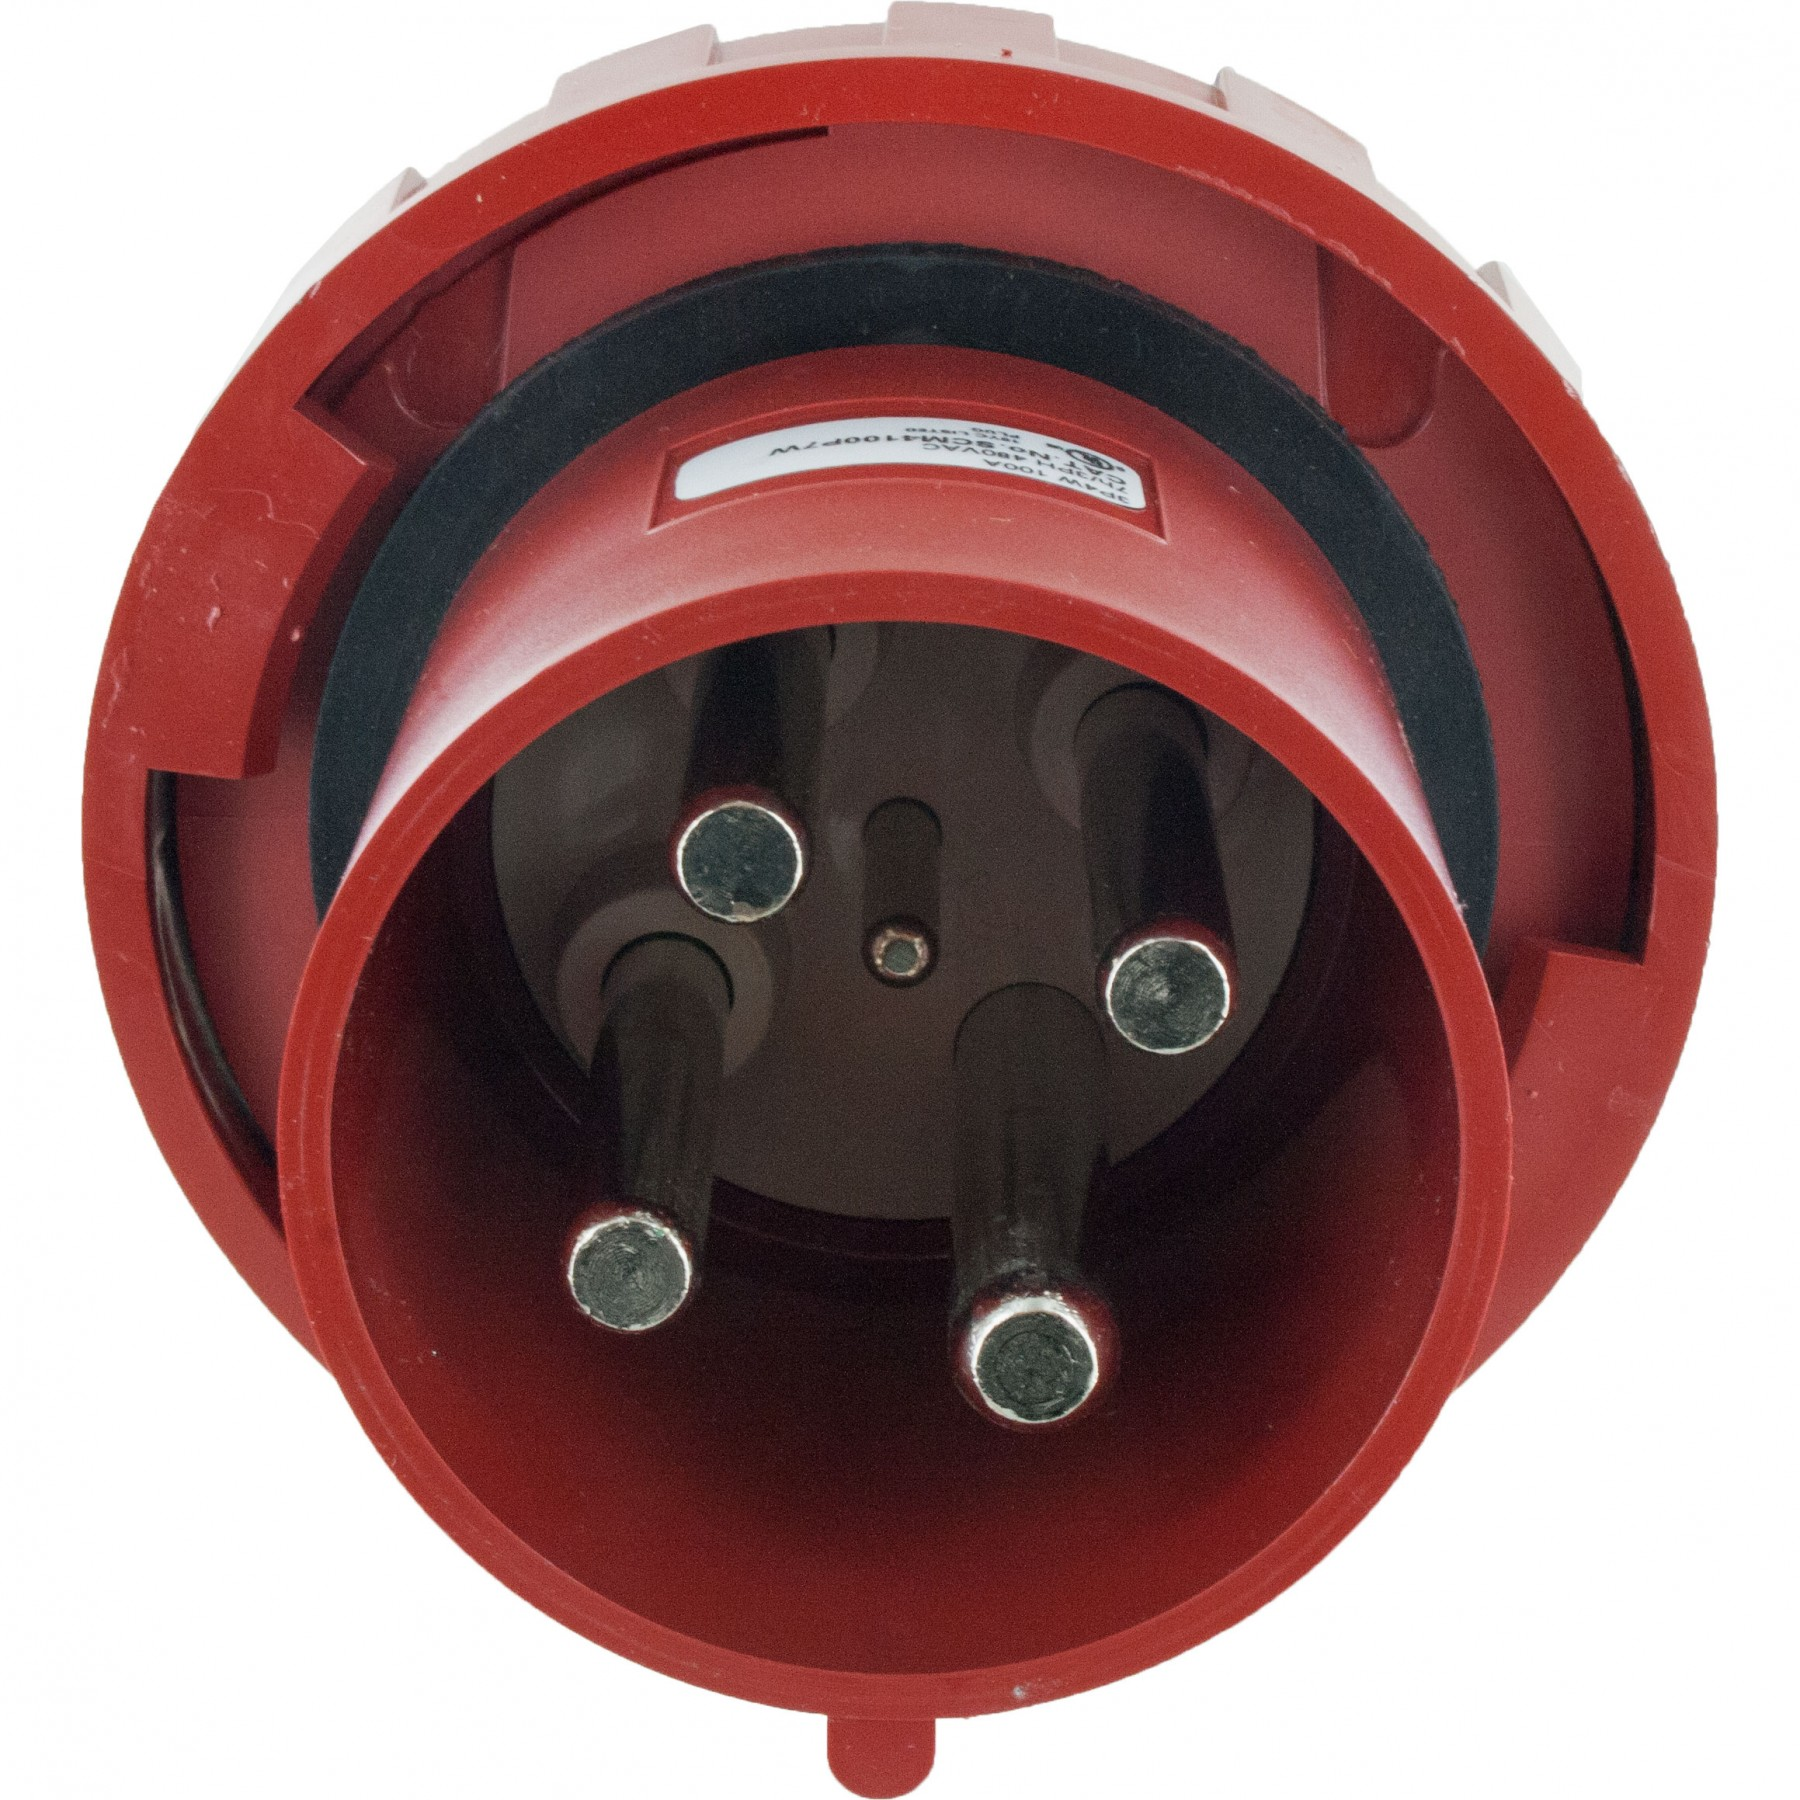 4100p7w pin and sleeve plug 100 amp 3 pole 4 wire   elecdirect 3 phase wiring colour code south africa #9